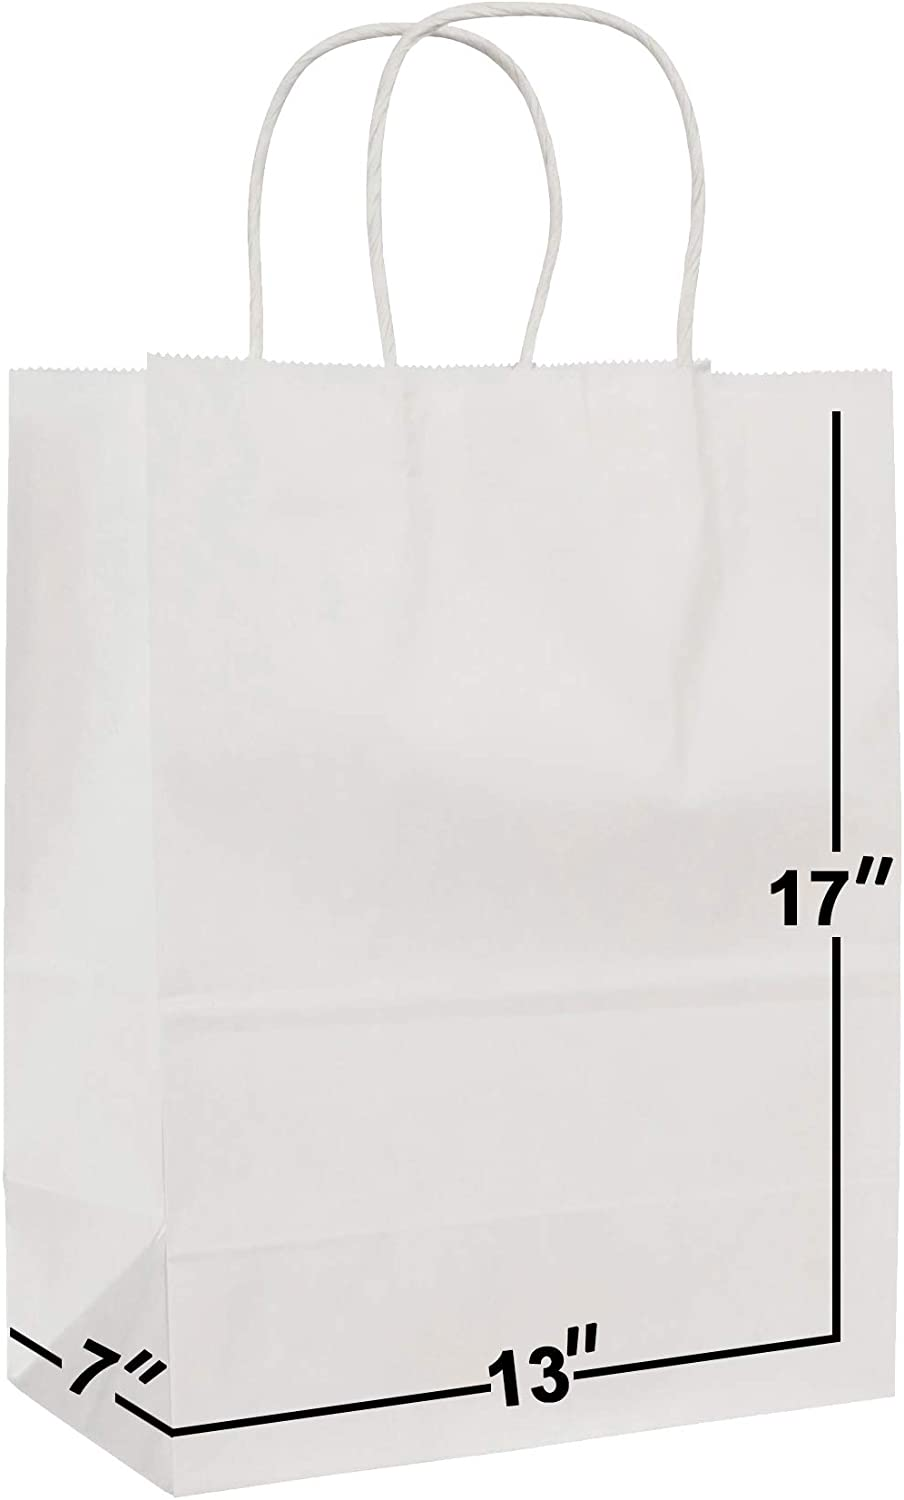 [50 Bags] 13 X 7 X 17 White Kraft Paper Gift Bags Bulk with Handles. Ideal for Shopping, Packaging, Retail, Party, Craft, Gifts, Wedding, Recycled, Business, Goody and Merchandise Bag